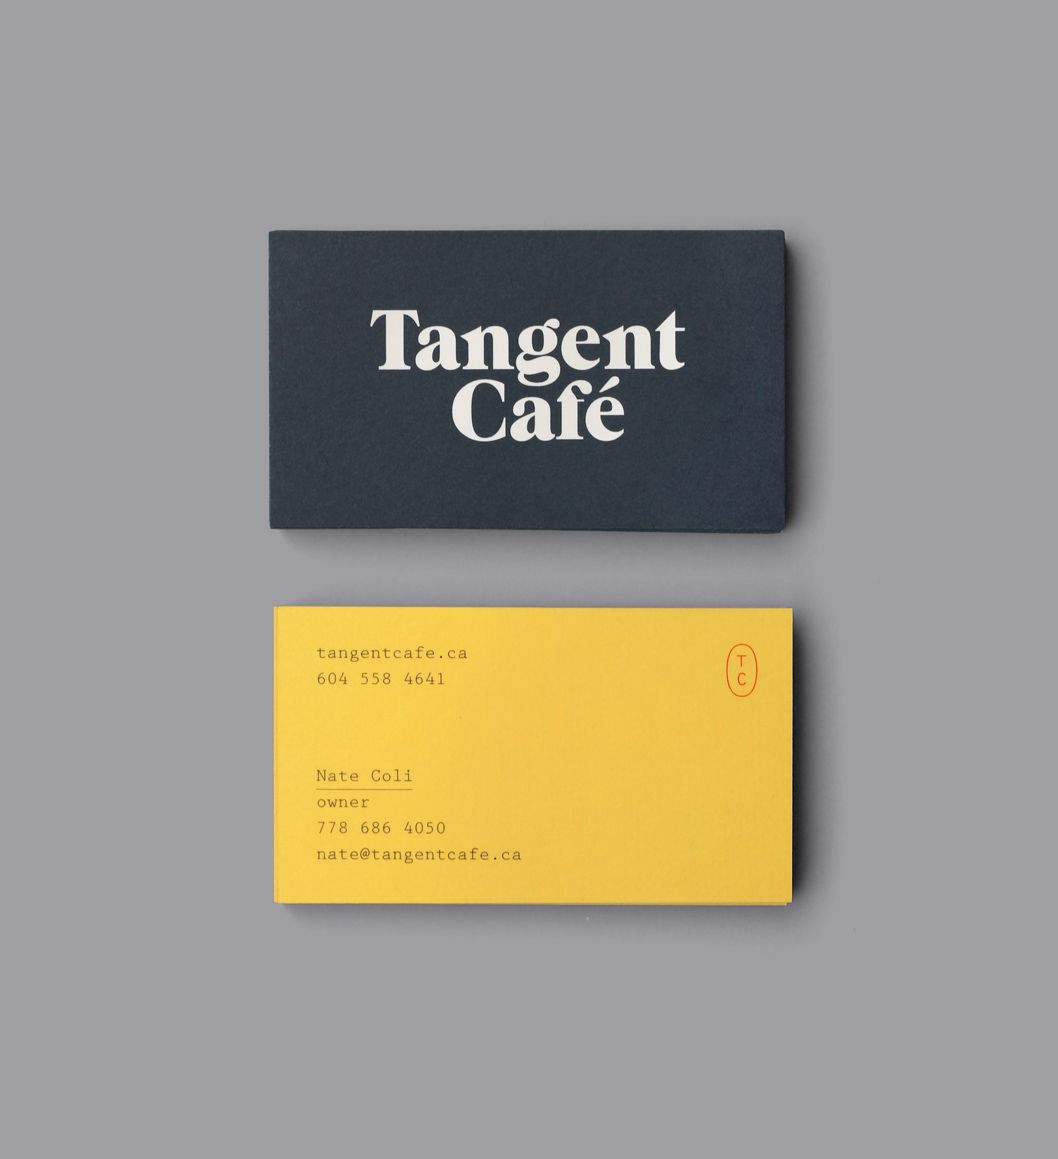 Tangent Cafe Finger Business Cards And Brand Identity